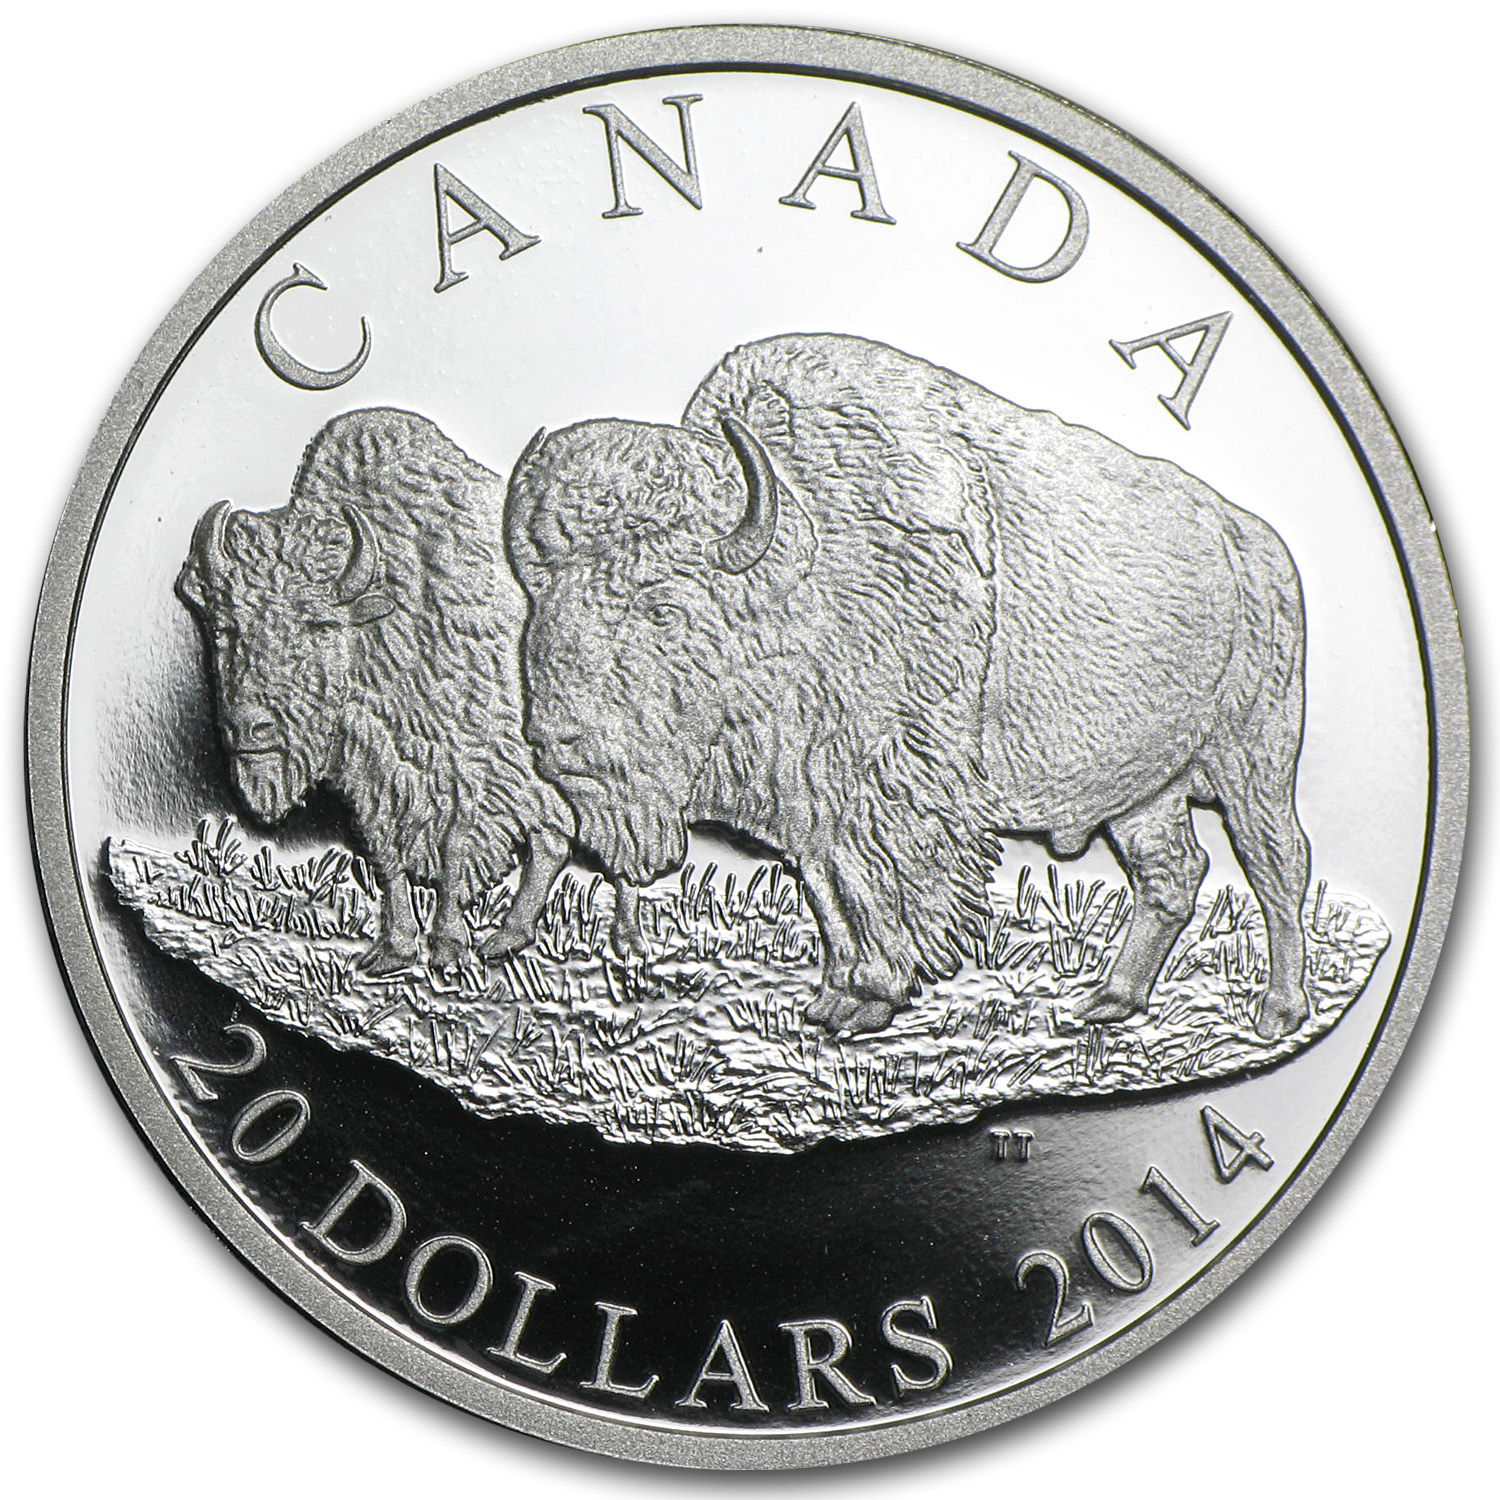 2014 Canadian 1 oz Proof Silver Bison - The Bull and His Mate